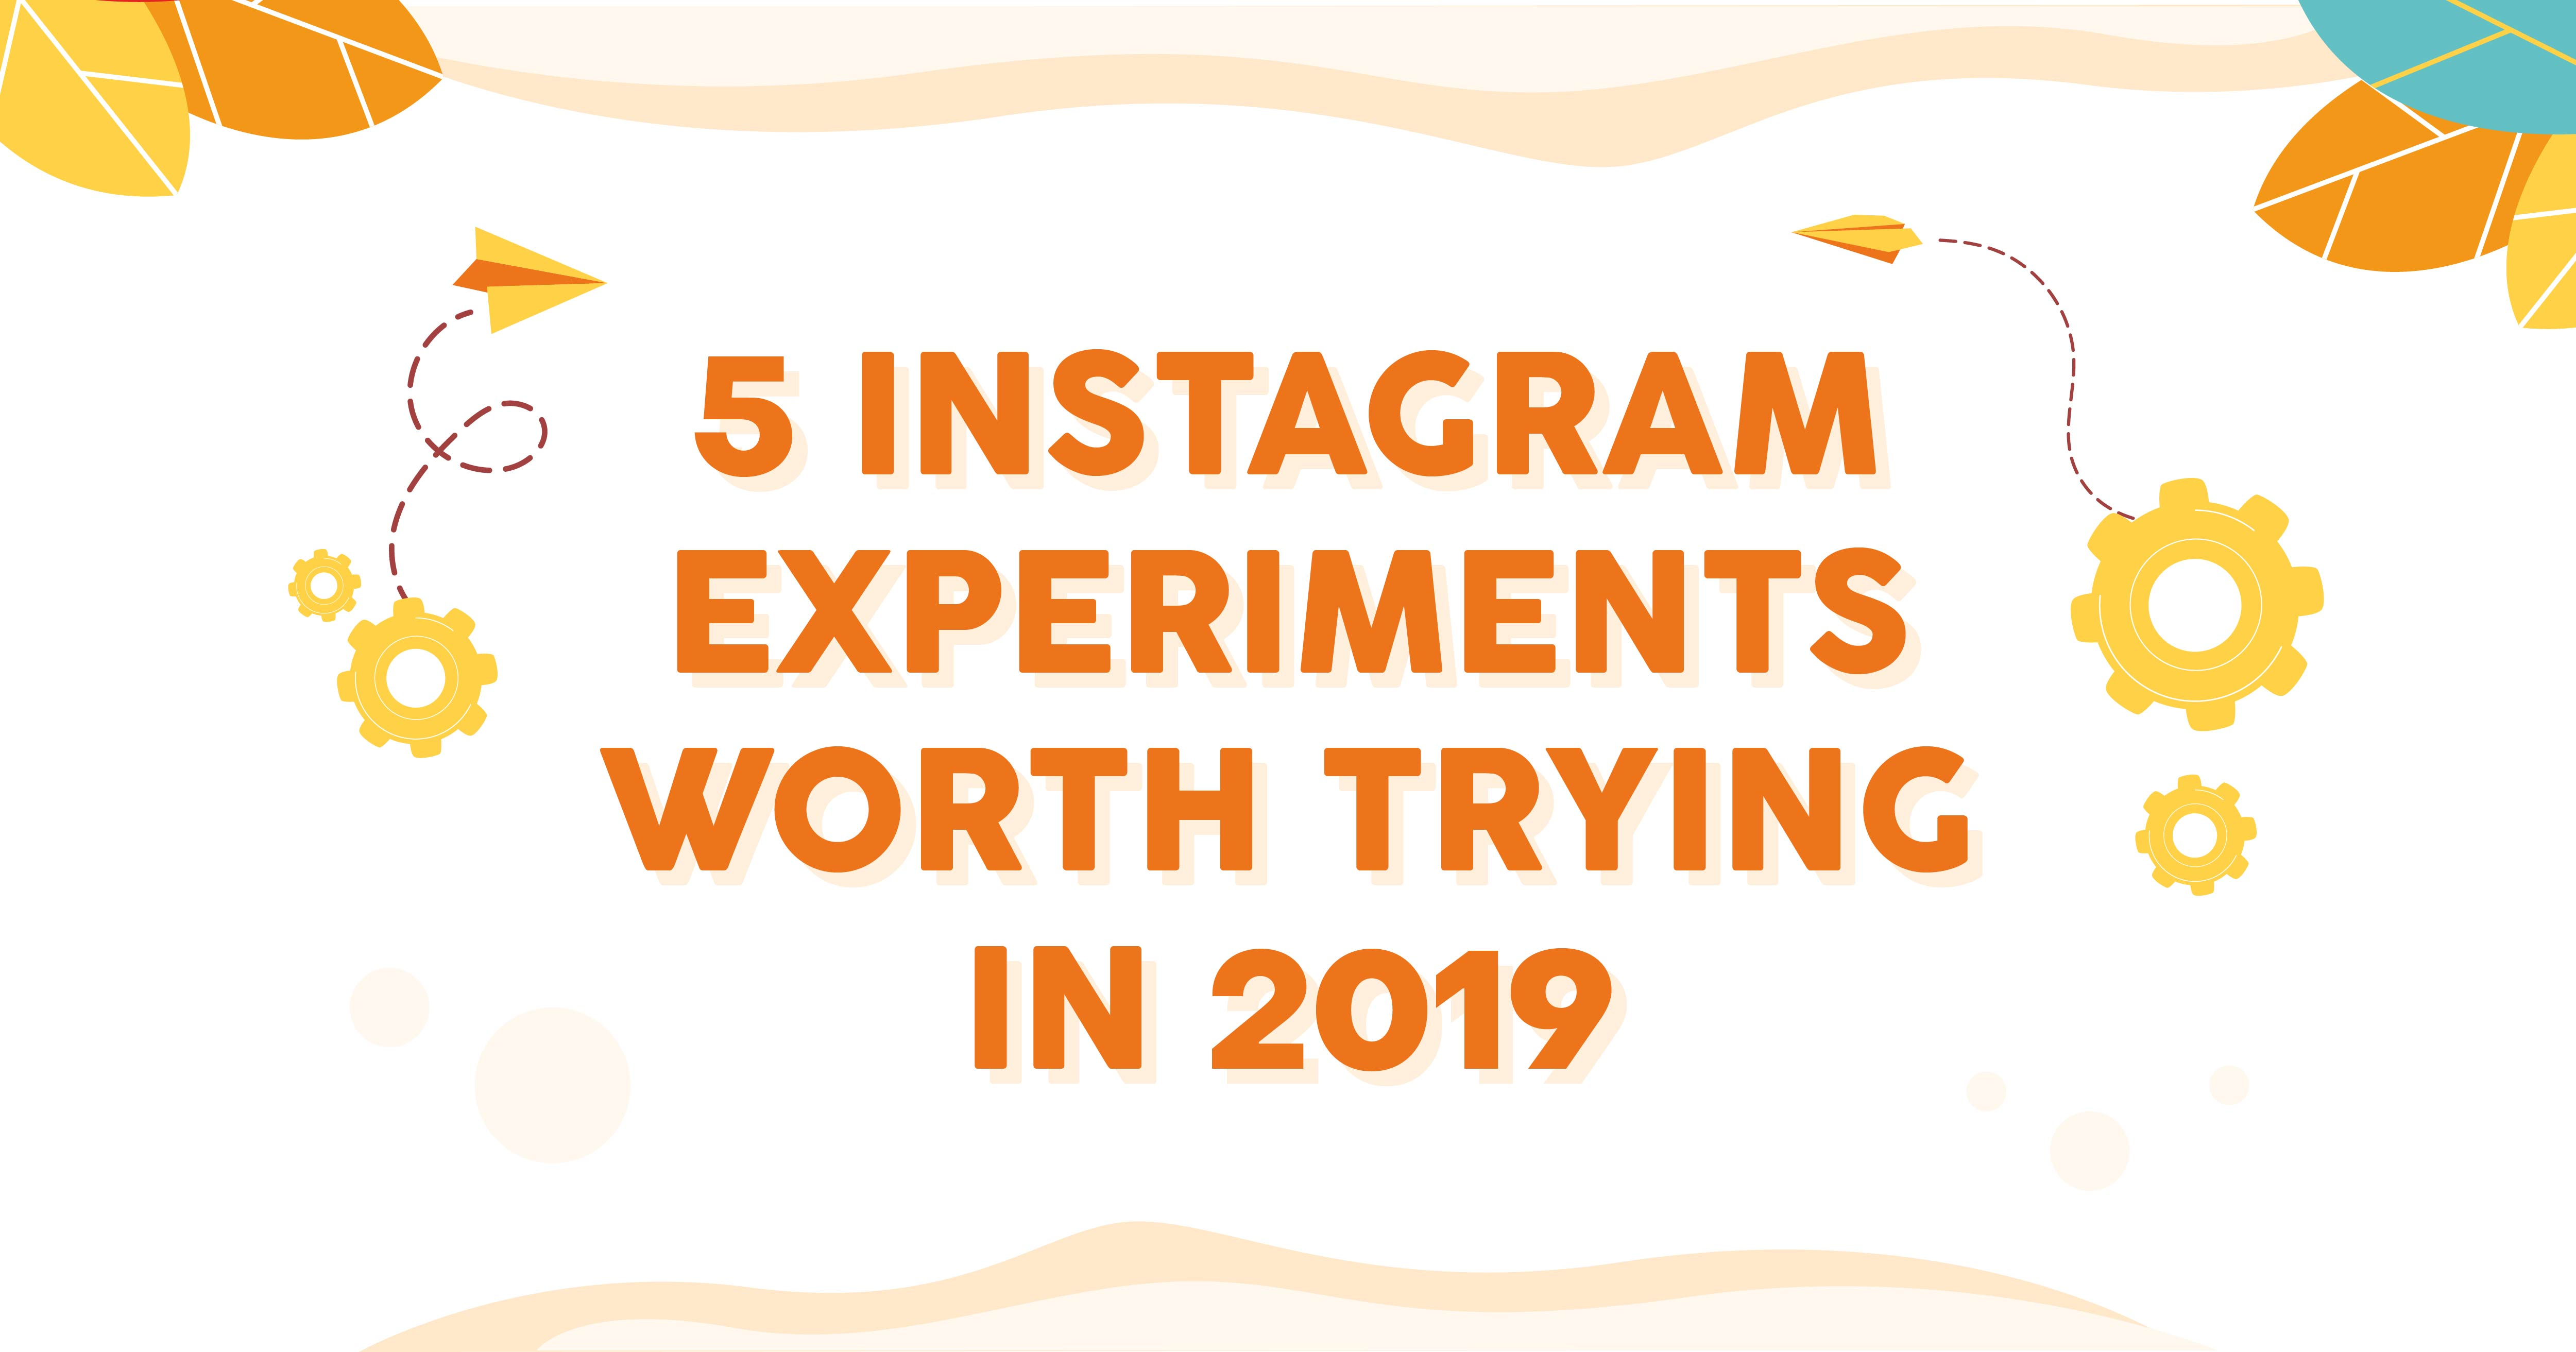 5 Instagram Experiments Worth Trying in 2019